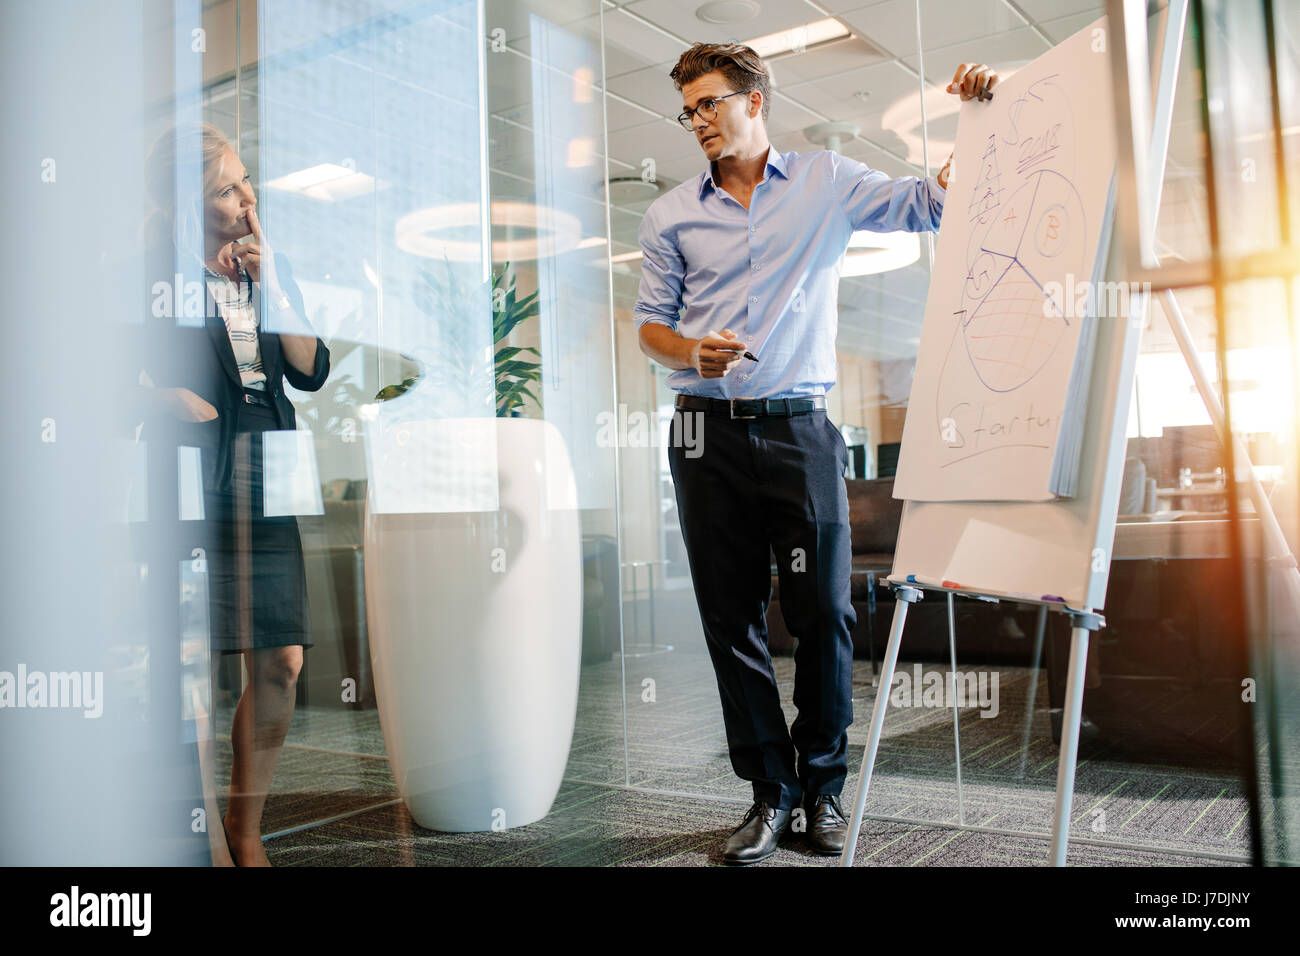 Office worker standing near flip chart with diagram. Mature businessman giving a presentation on a flipchart to - Stock Image